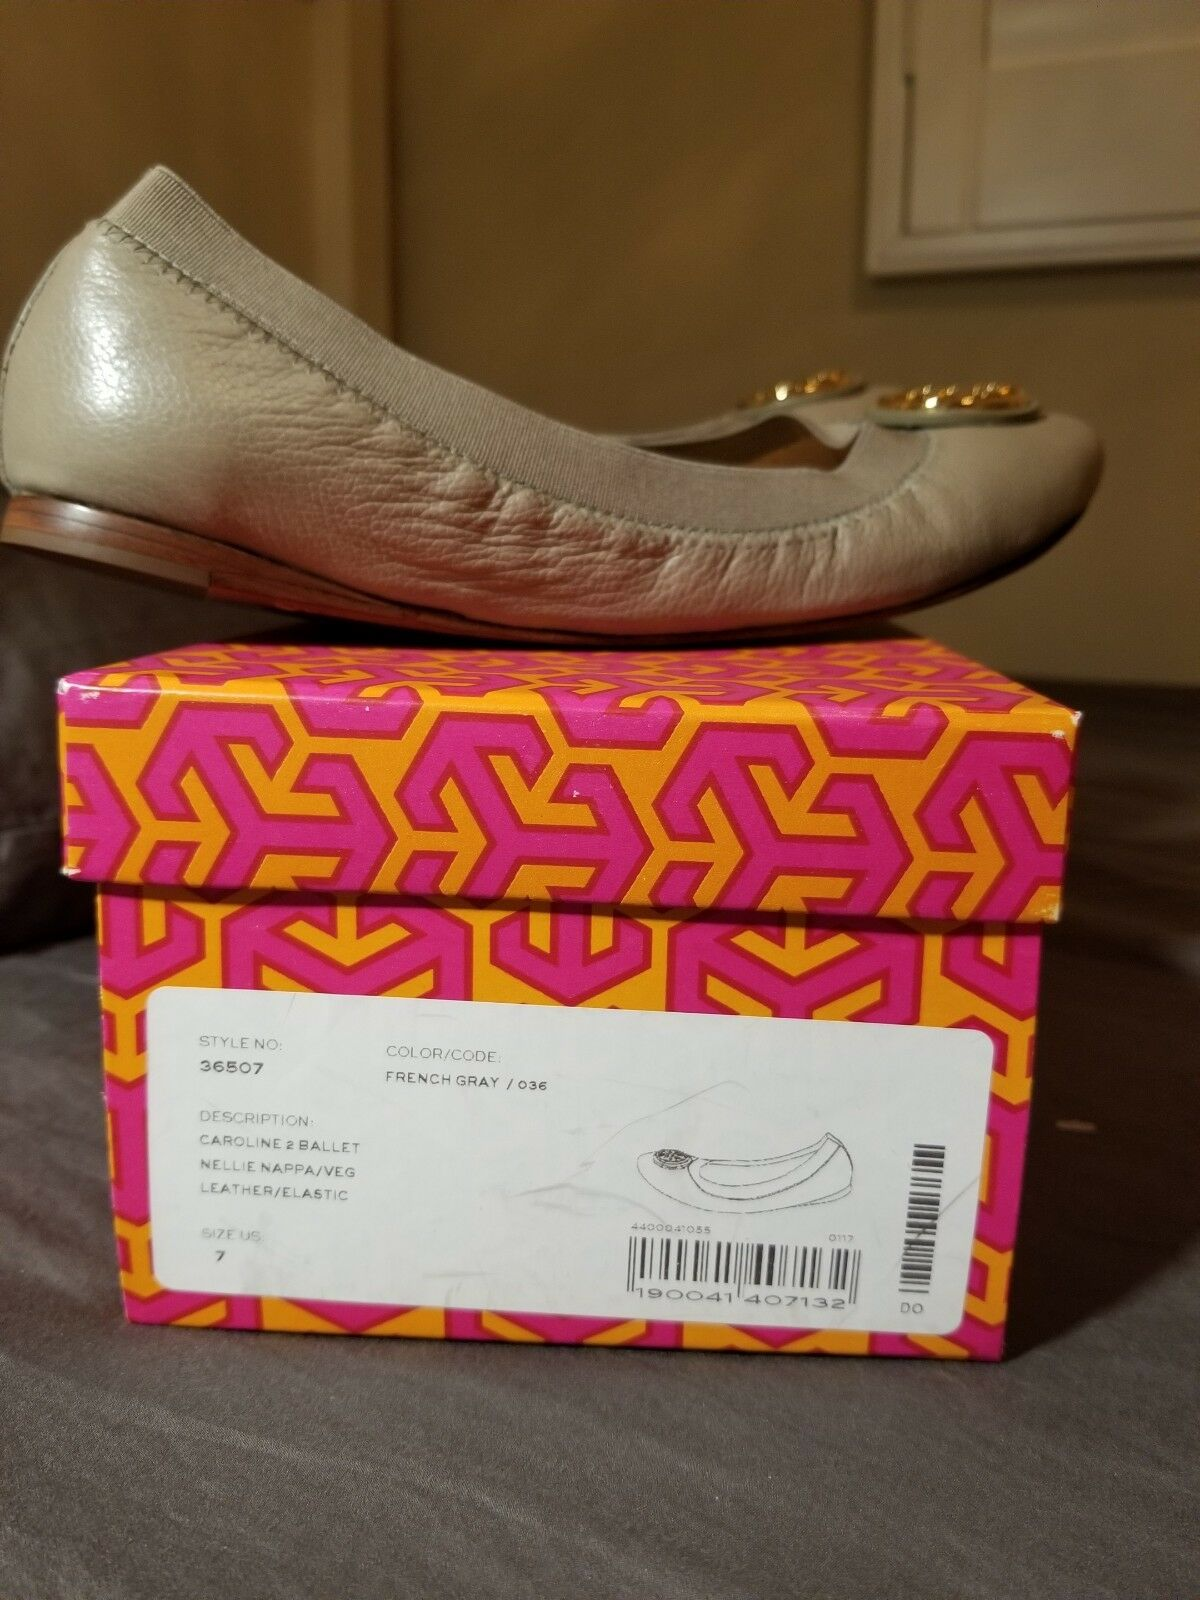 NIB Tory Burch Carolina Ballet